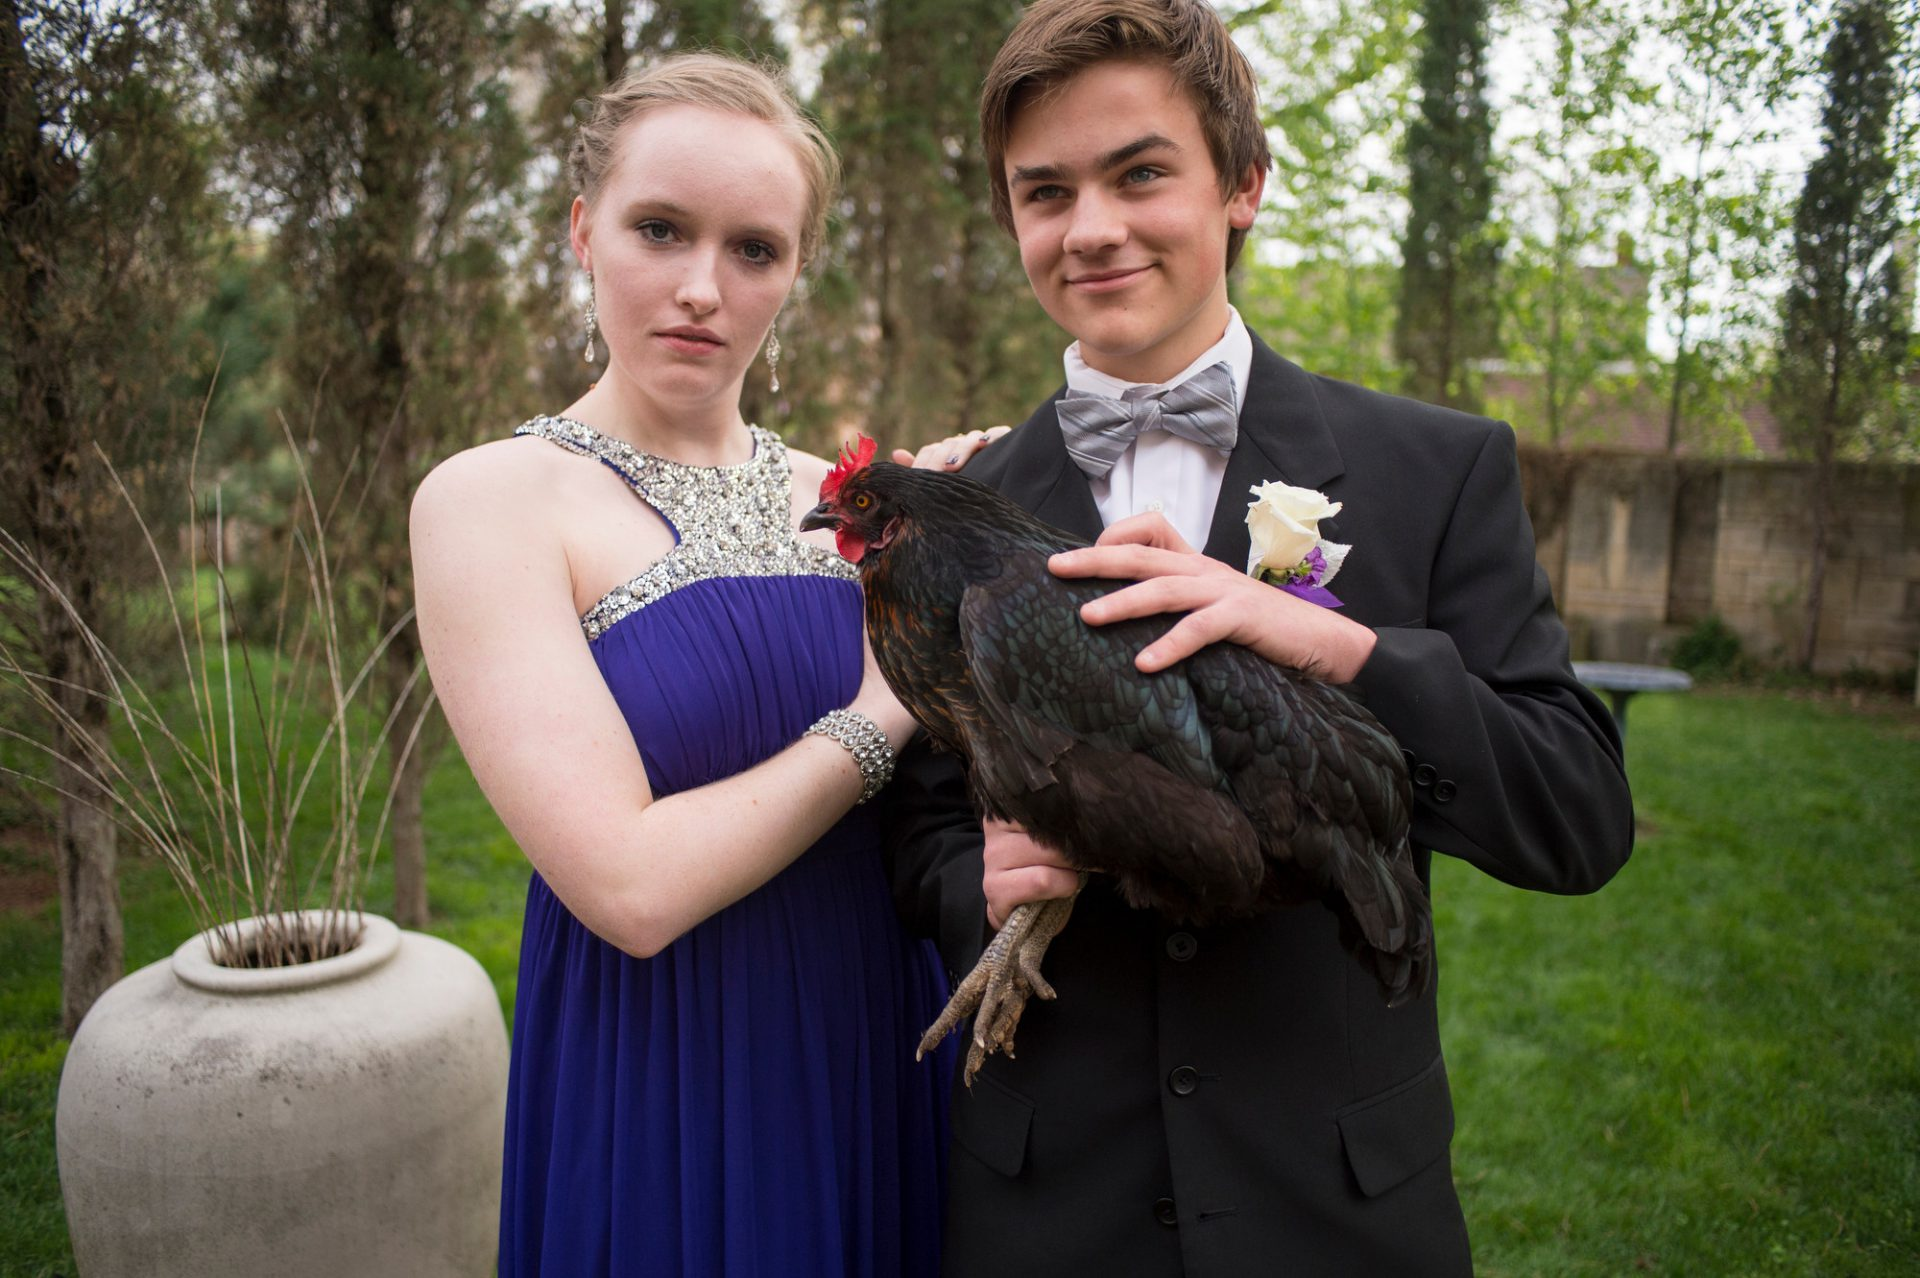 Photo: Two teenagers pose for portraits with a chicken before heading to their senior prom.